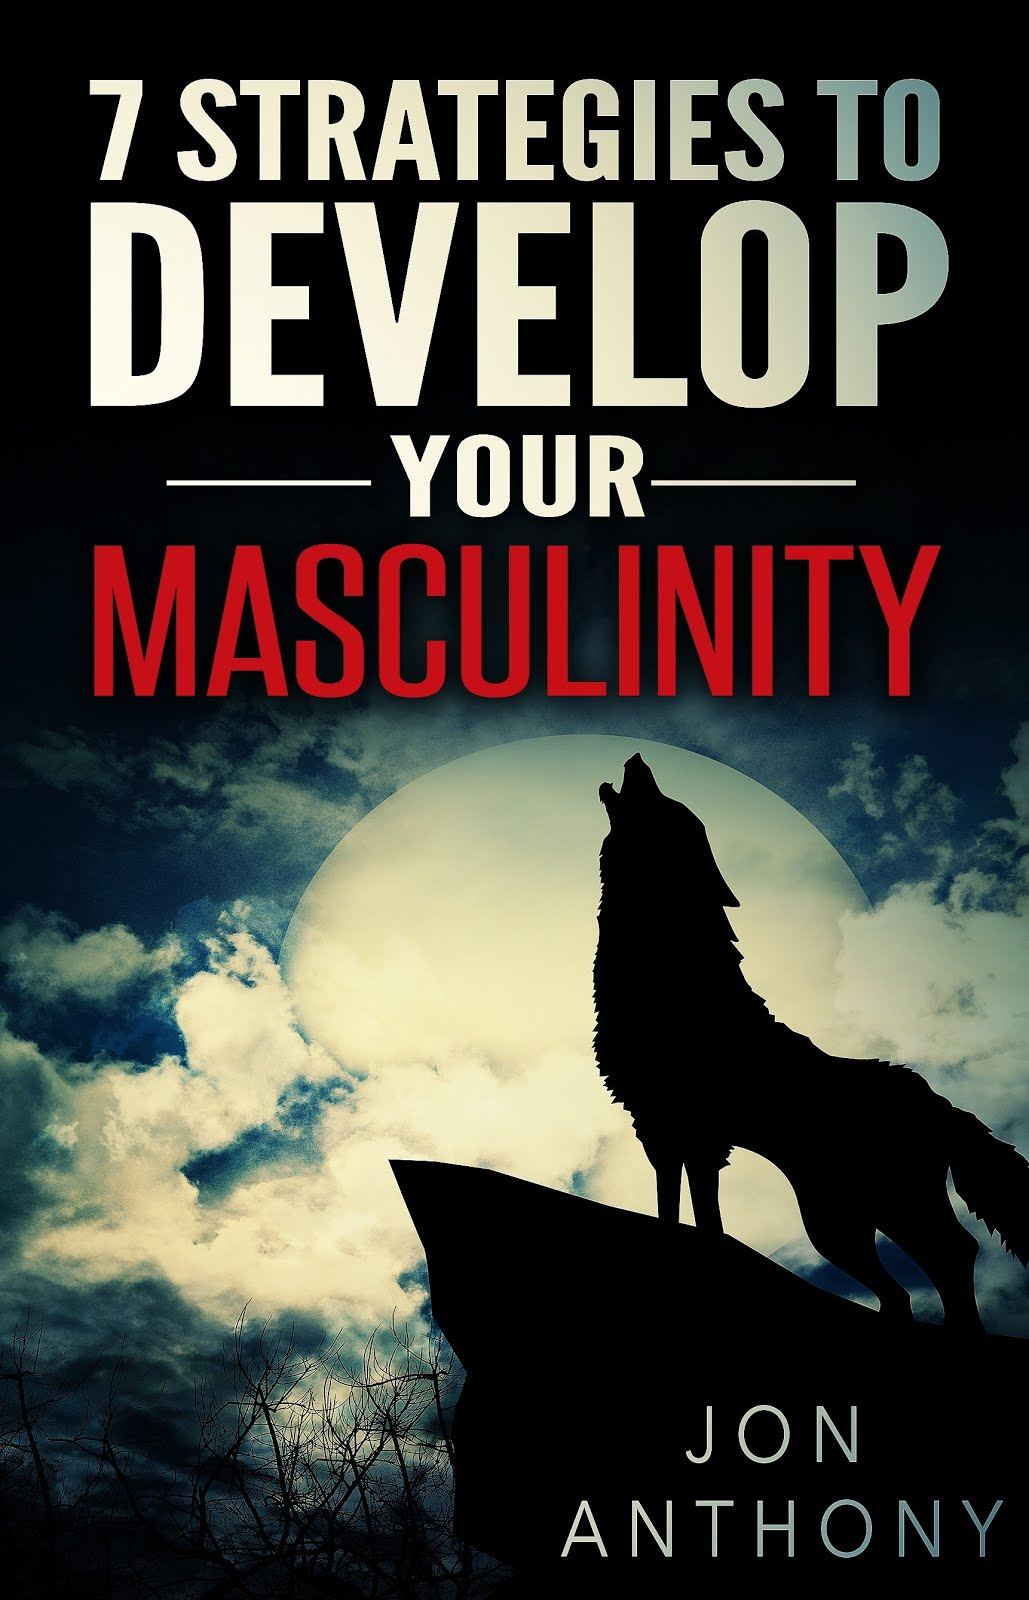 7 Strategies To Develop Your Masculinity